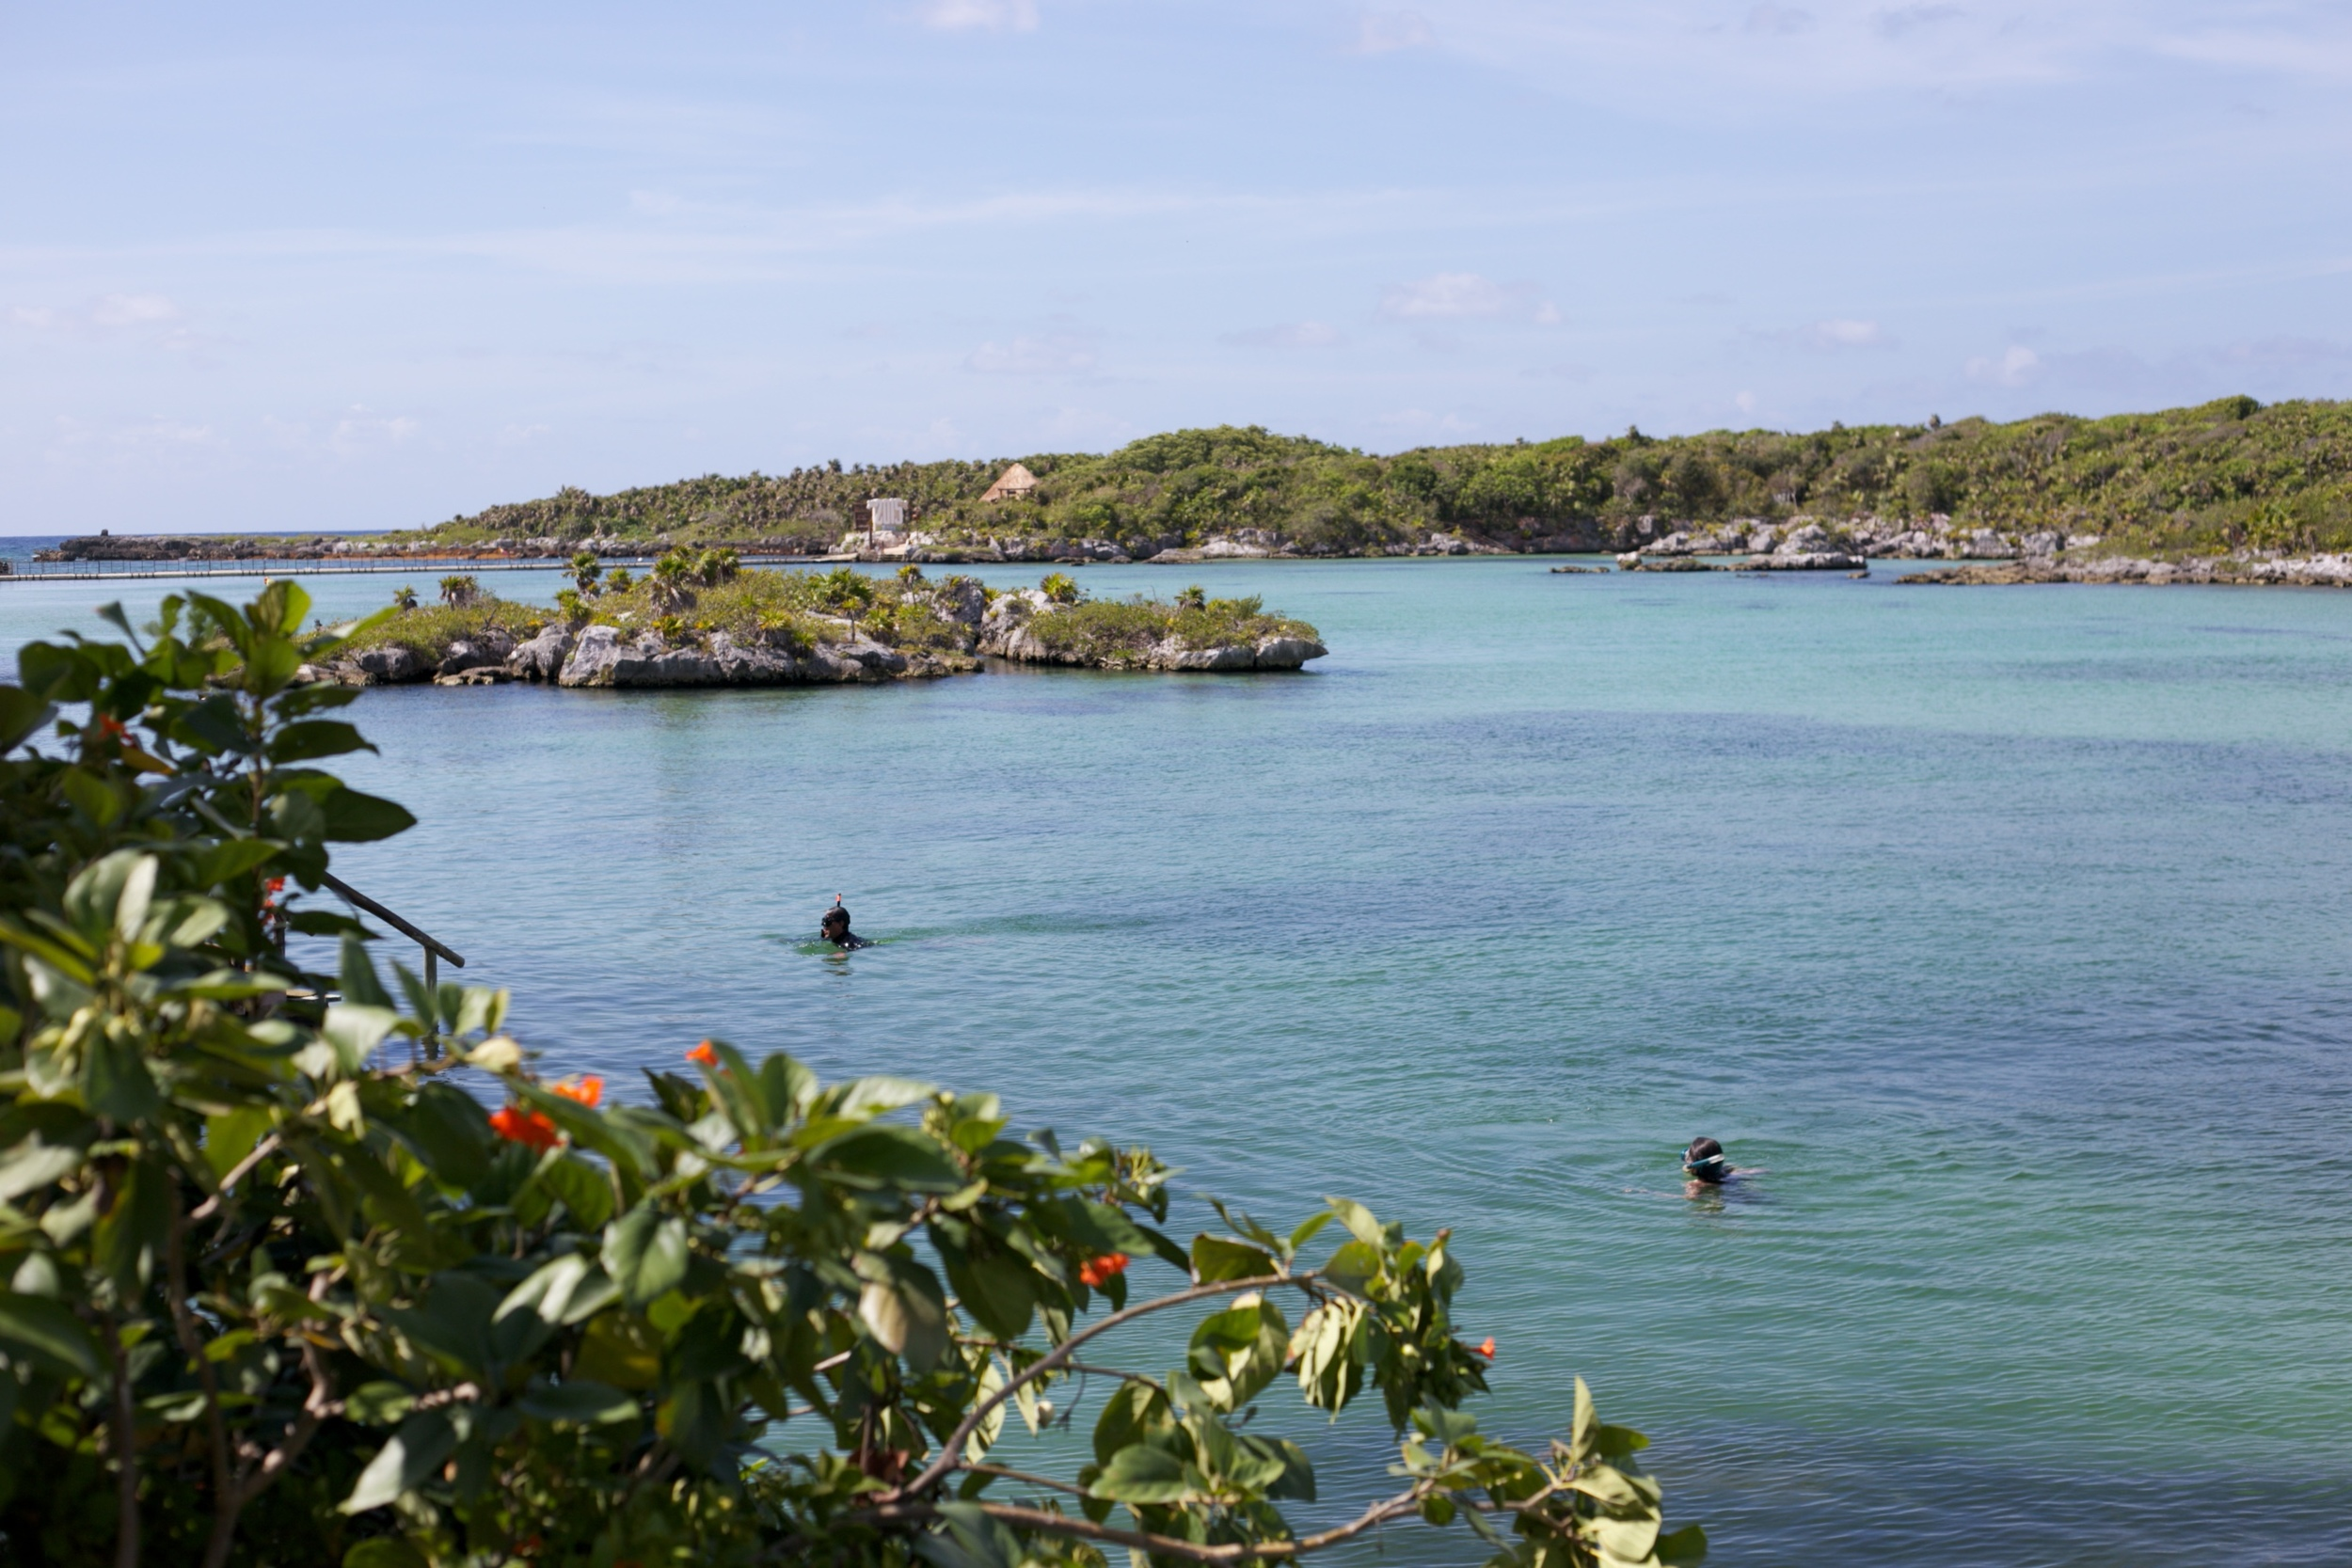 Xel Ha Lagoon - turquoise waters and snorkelers.